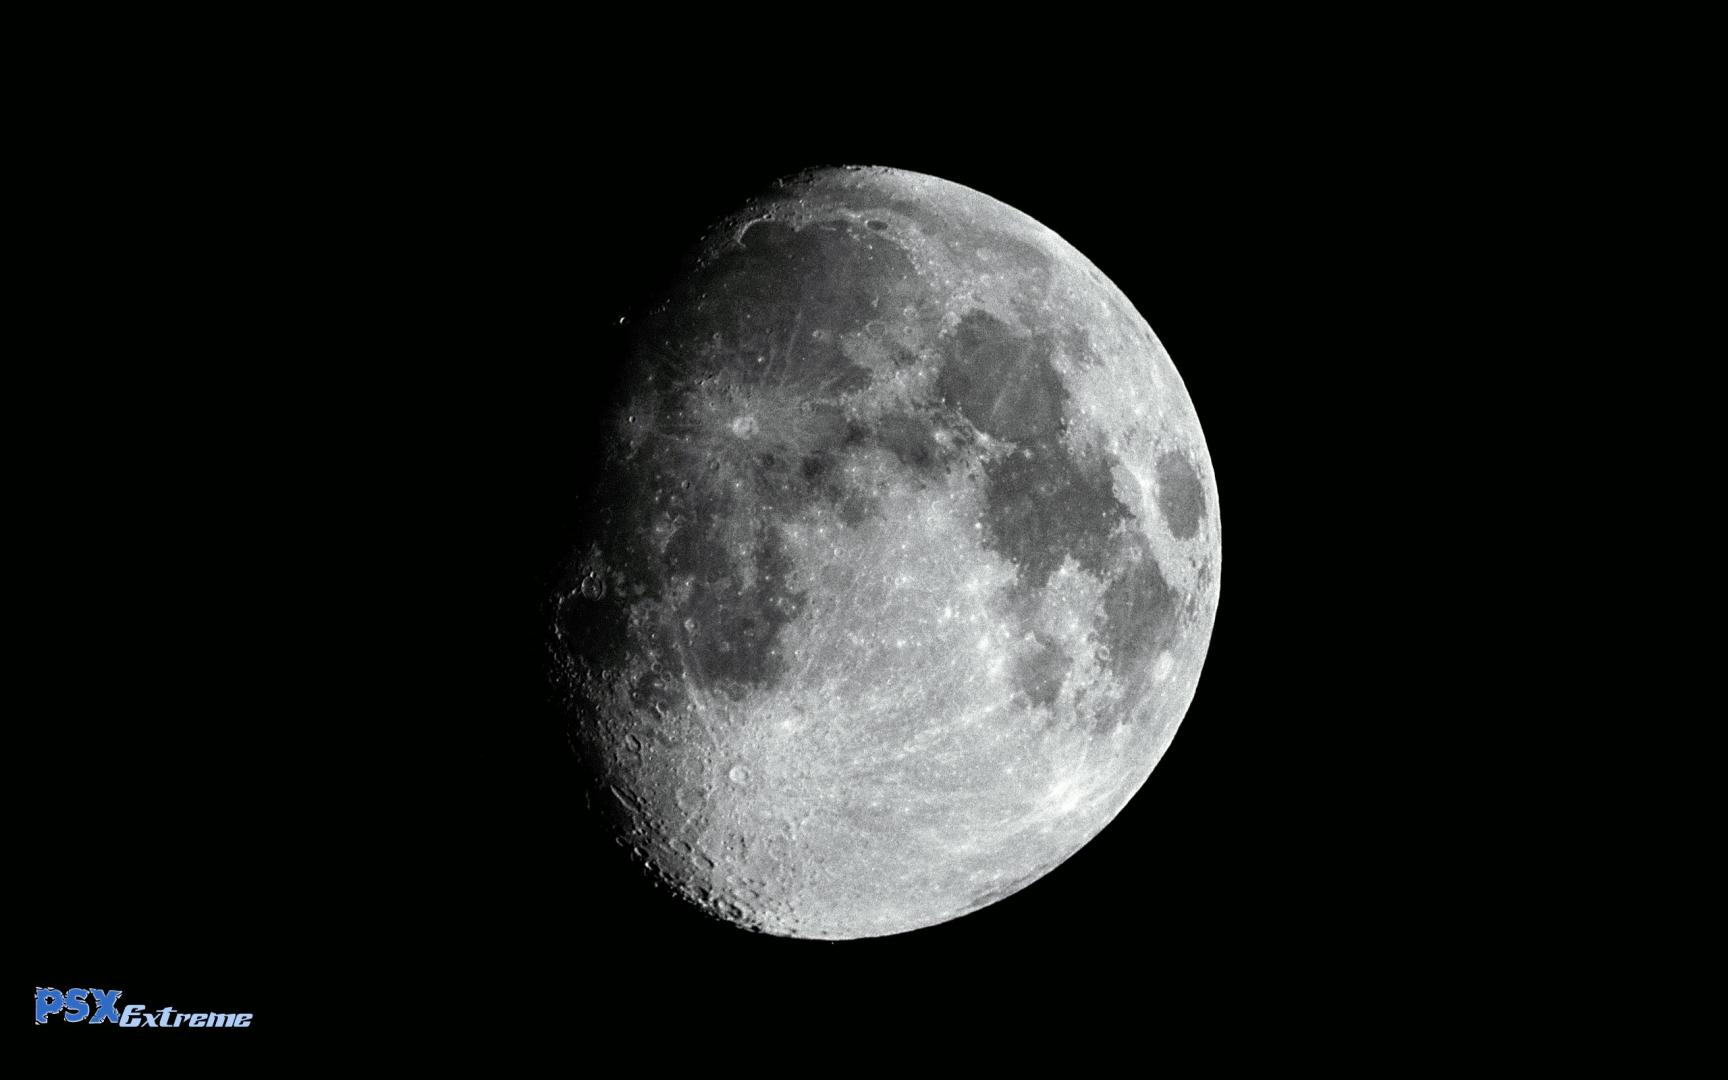 This is a Moon wallpaper. This Moon background can be used for your PS3 or